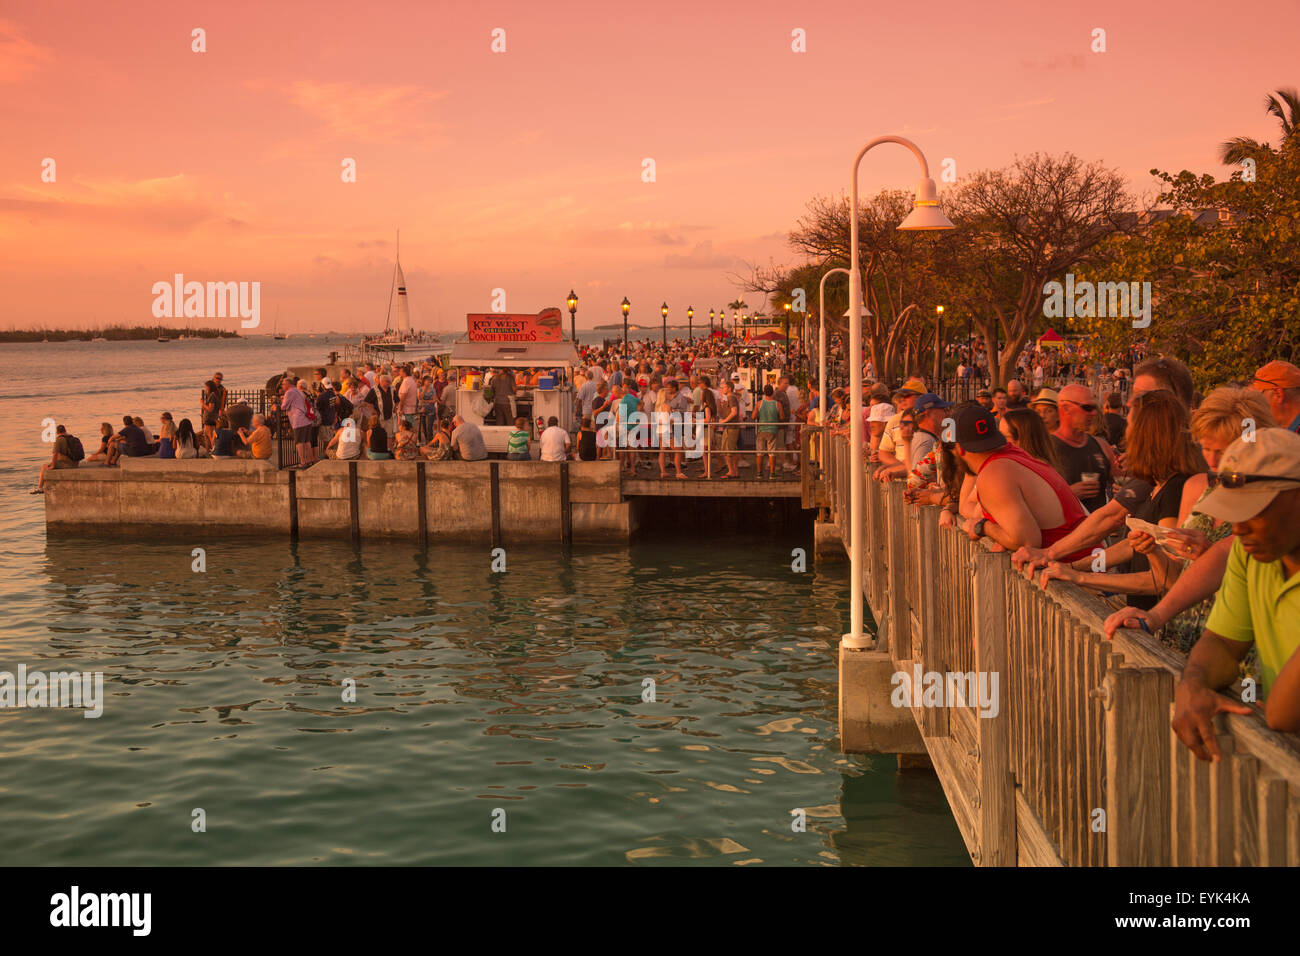 TOURISTS WATCHING SUNSET MALLORY SQUARE OLD TOWN HISTORIC DISTRICT KEY WEST FLORIDA USA - Stock Image